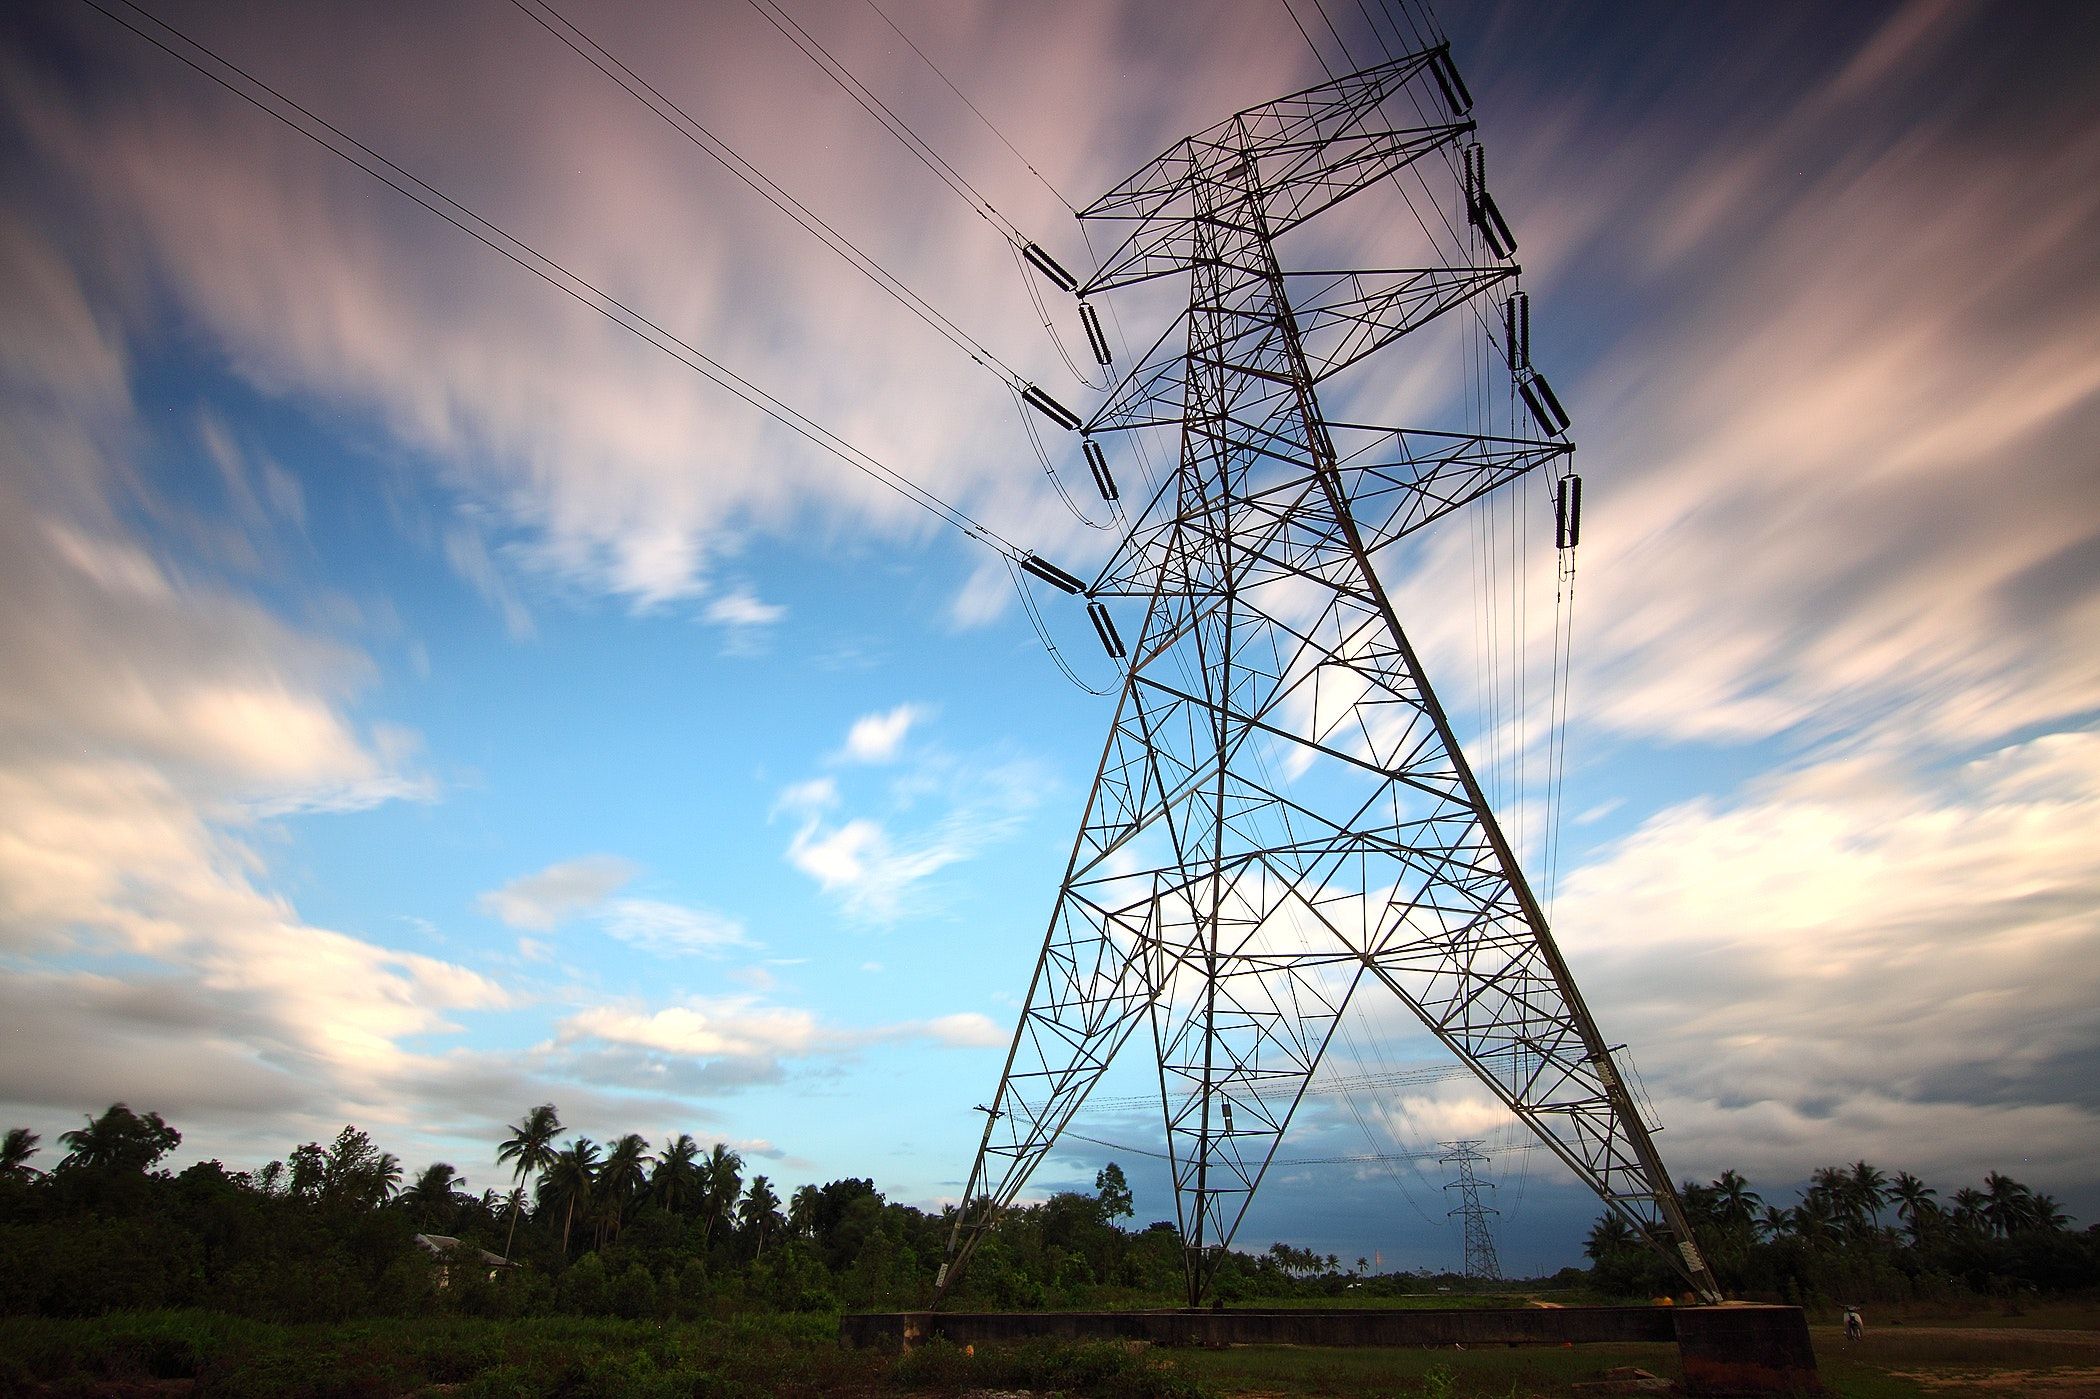 clouds-electricity-energy-157827